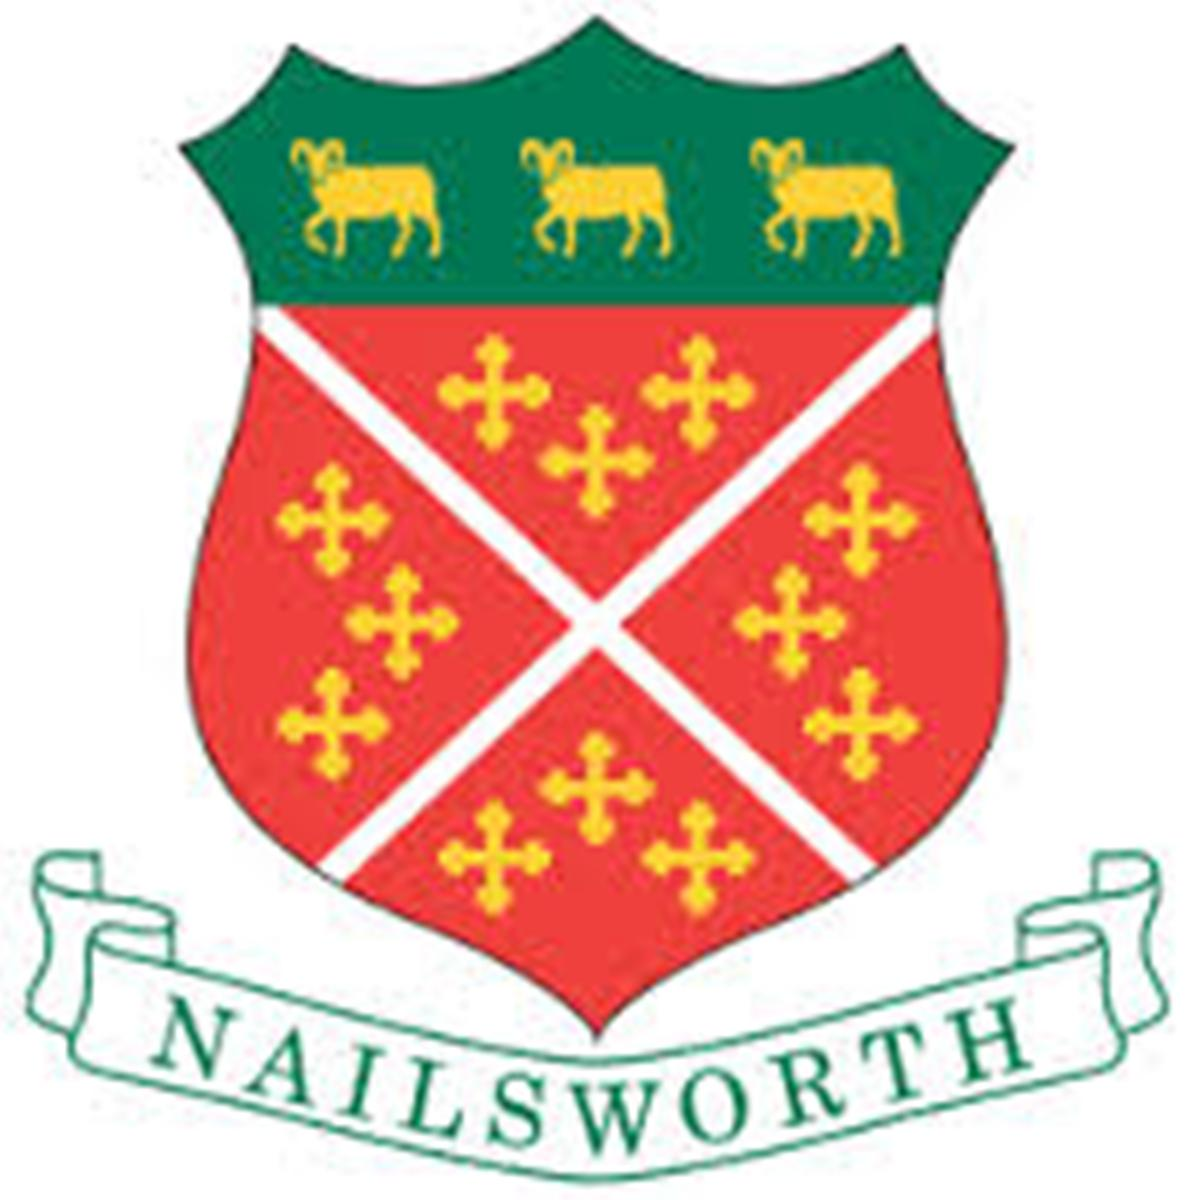 Nailsworth Town Council torn over sub-committee dispute